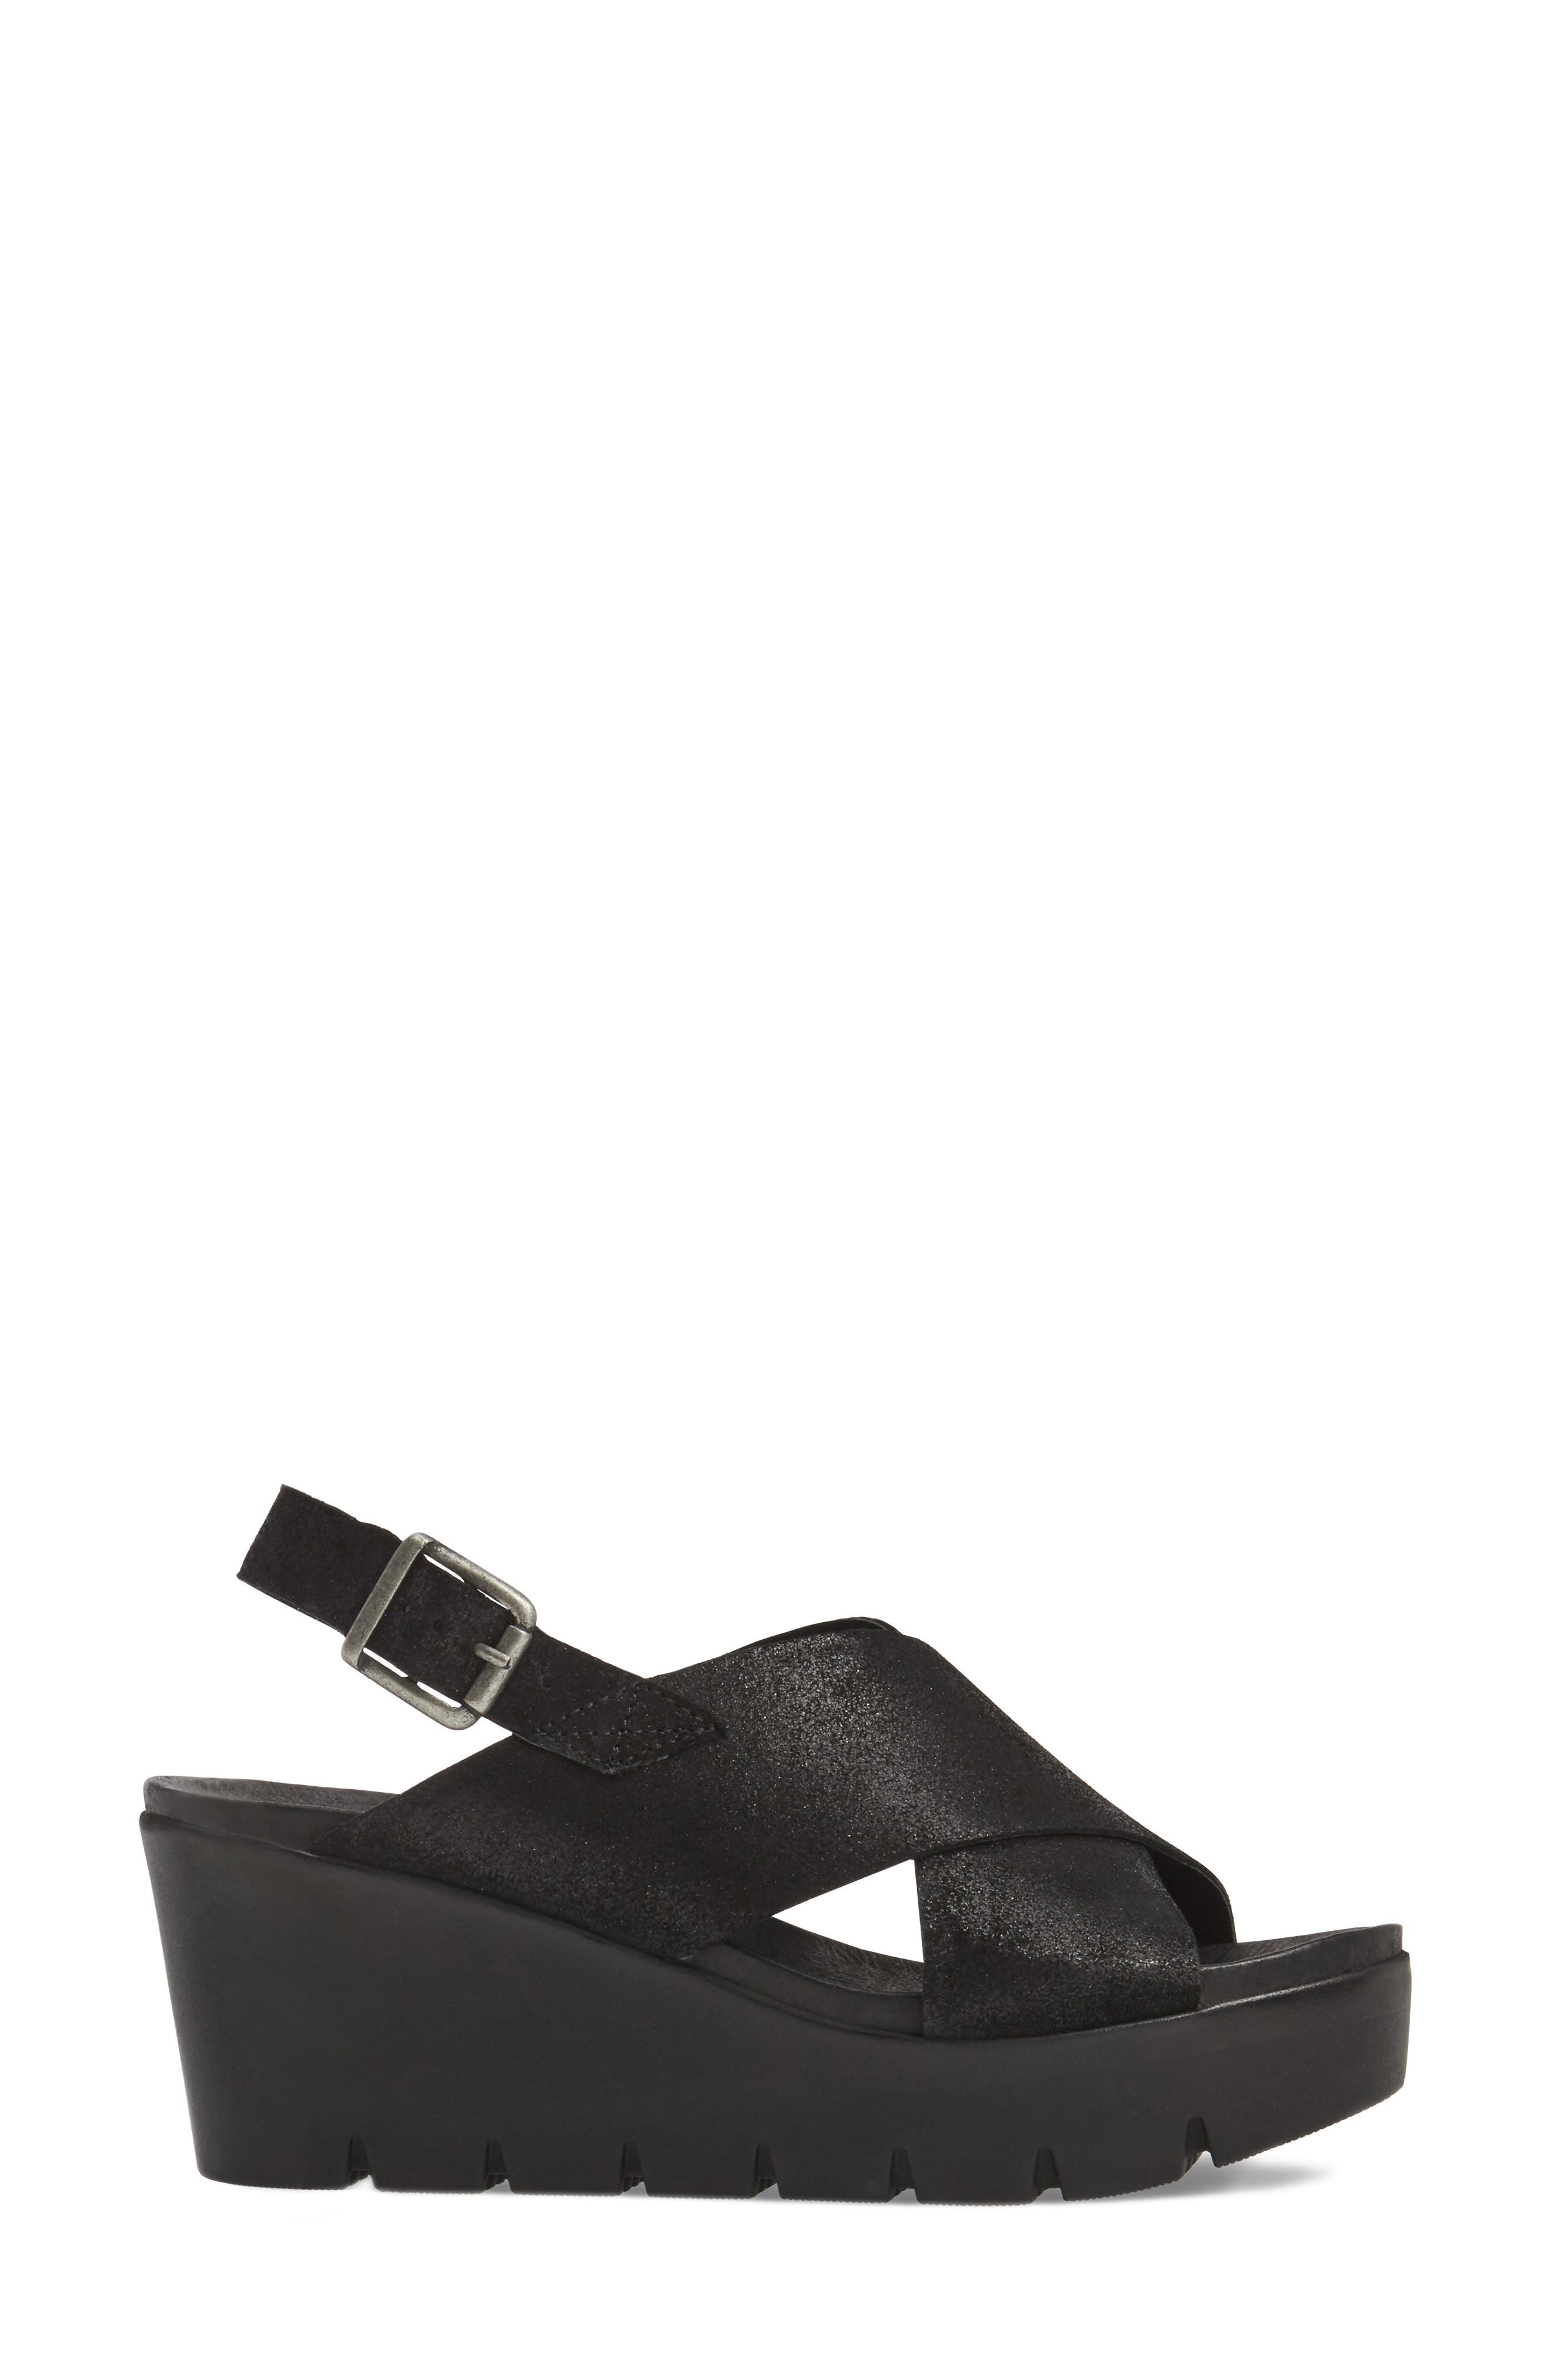 Payton Platform Wedge Sandal,                             Alternate thumbnail 3, color,                             001